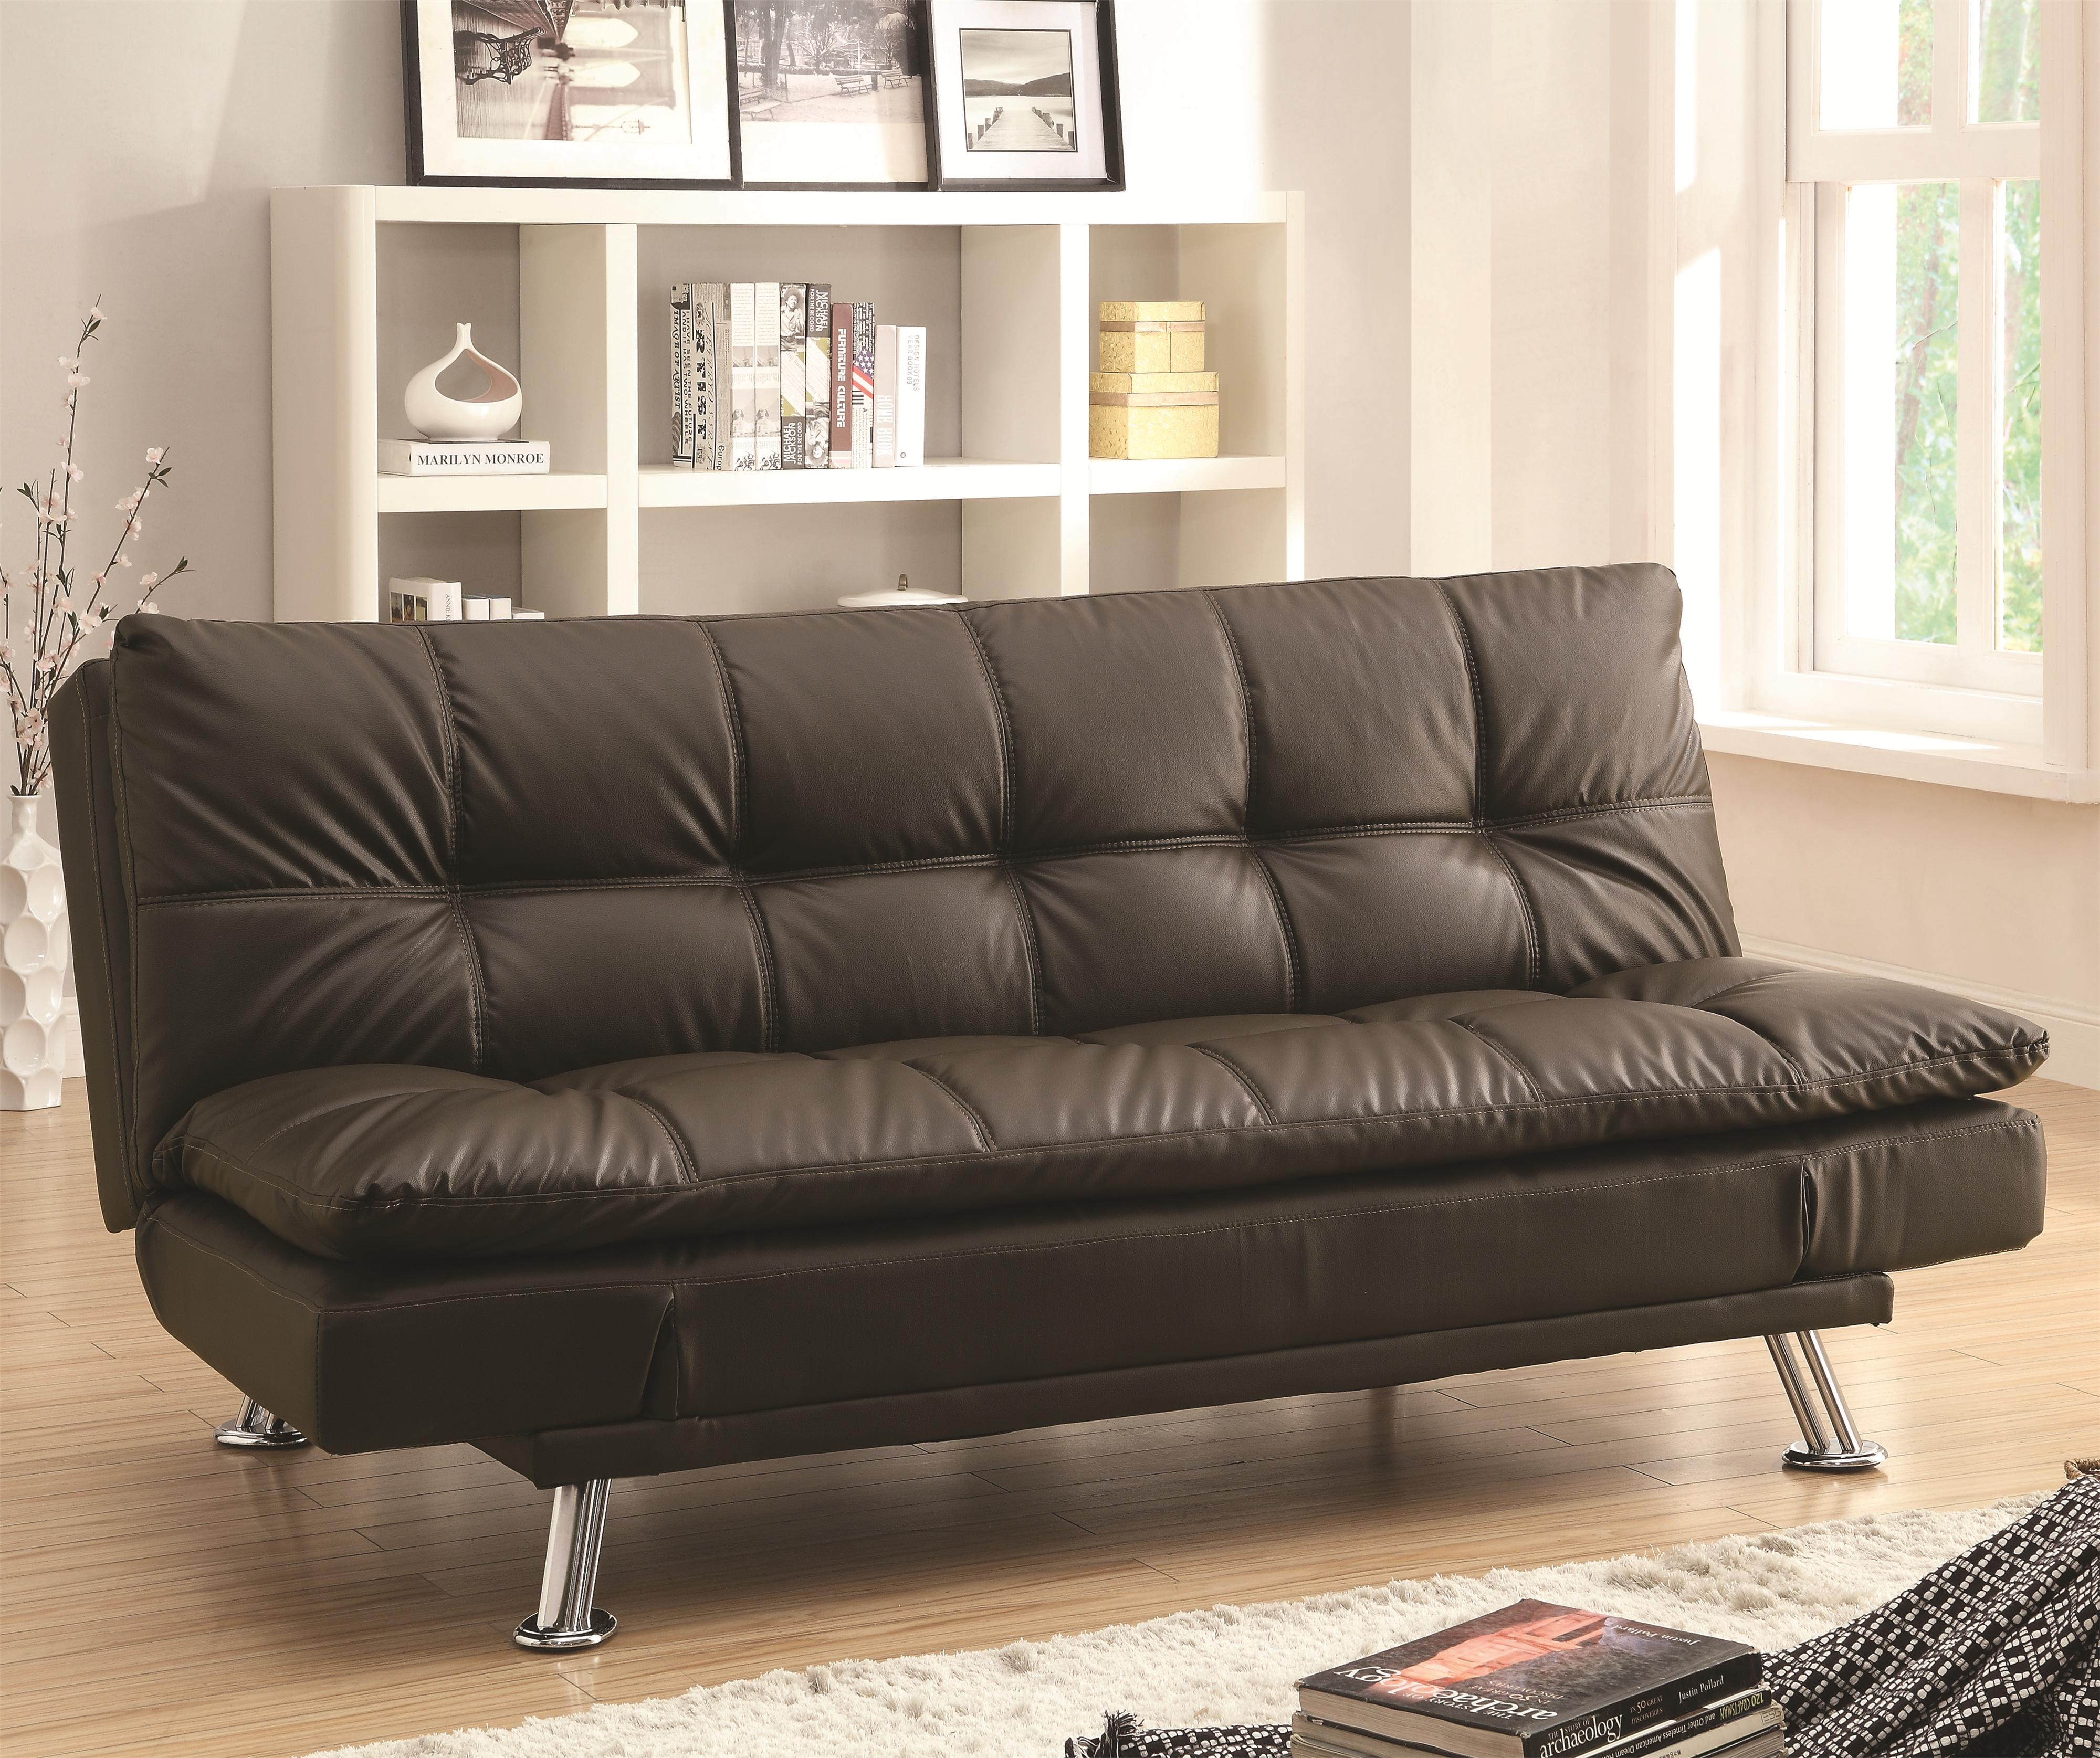 Coaster Dilleston Sofa Bed in Futon Style - Item Number: 300321